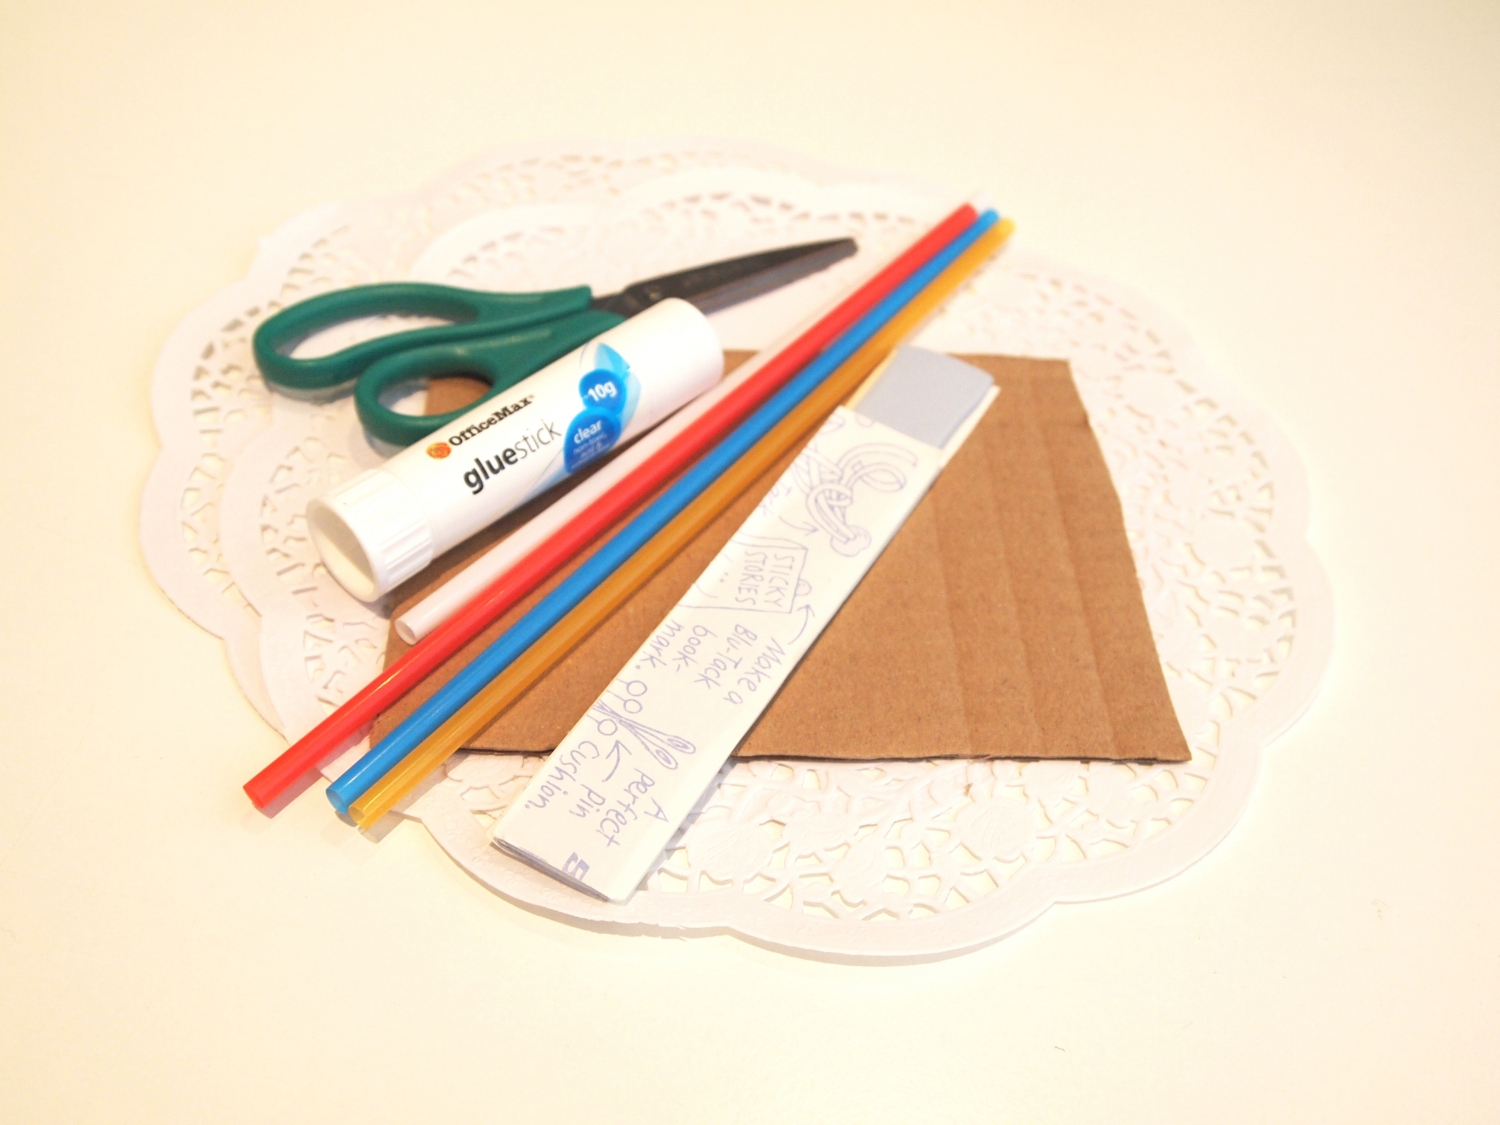 Selection of craft resources: Cardboard, scissors, a straw, blu-tac, glue and a mini doily.